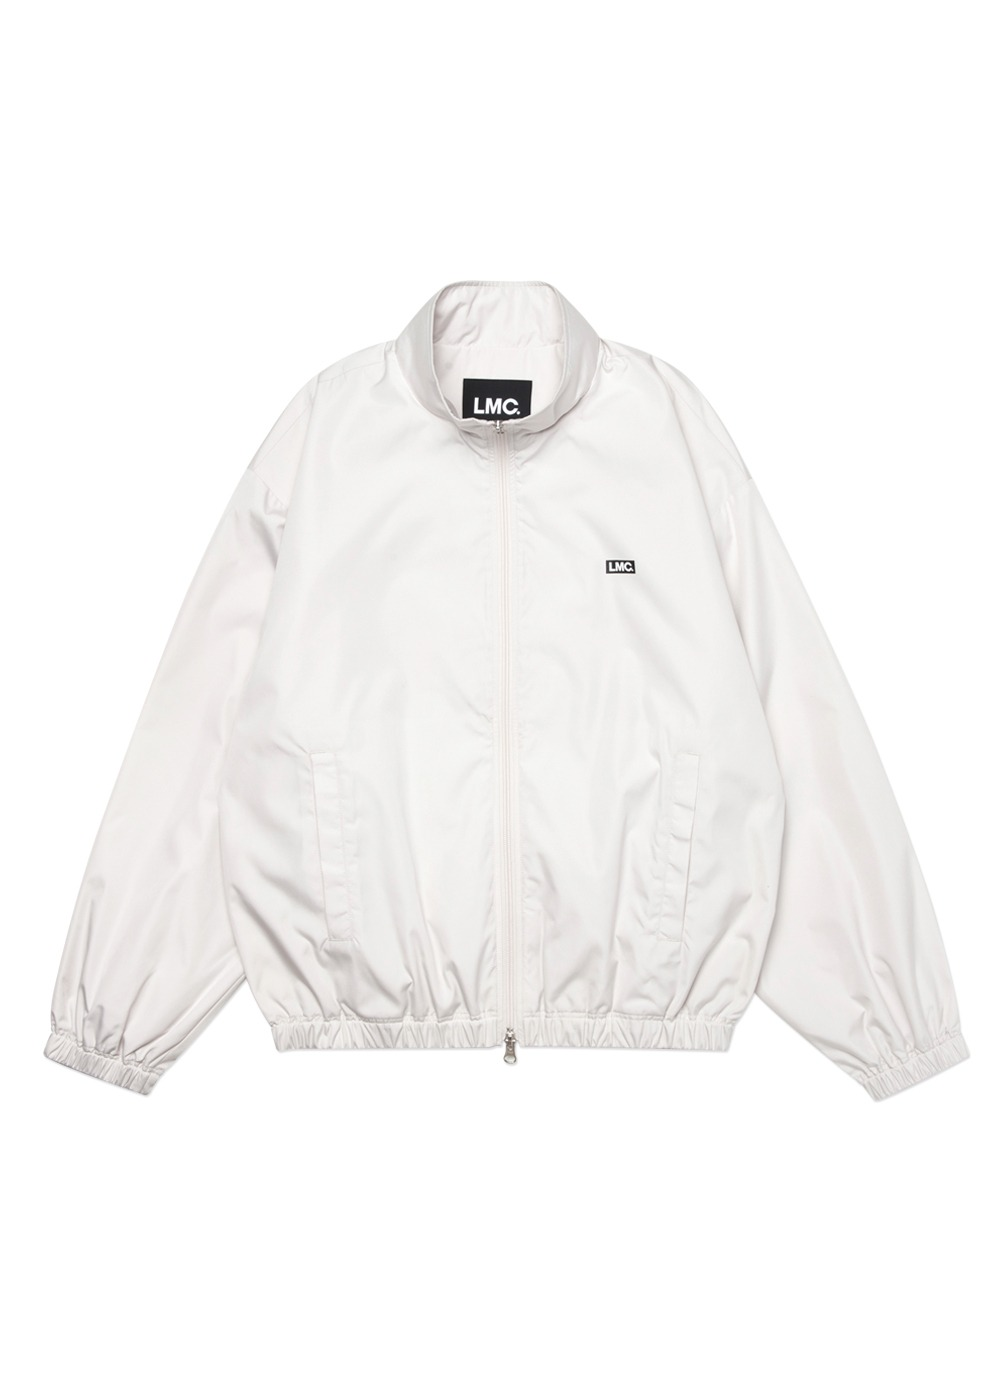 LMC IDEAL TRACK JACKET cream